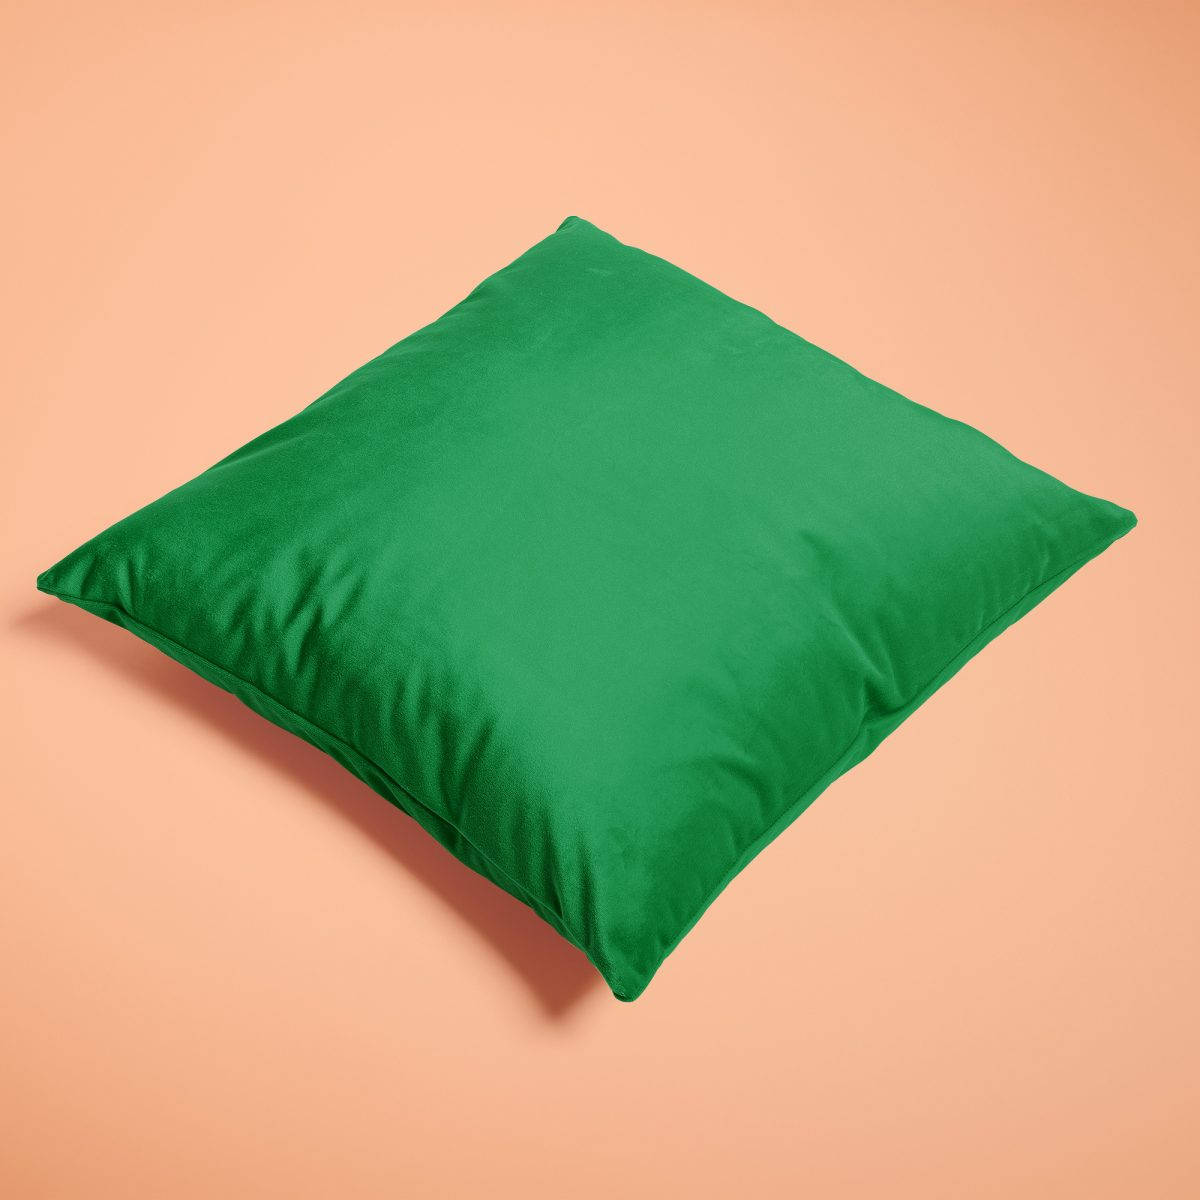 green-covers-of-the-rainbow-2